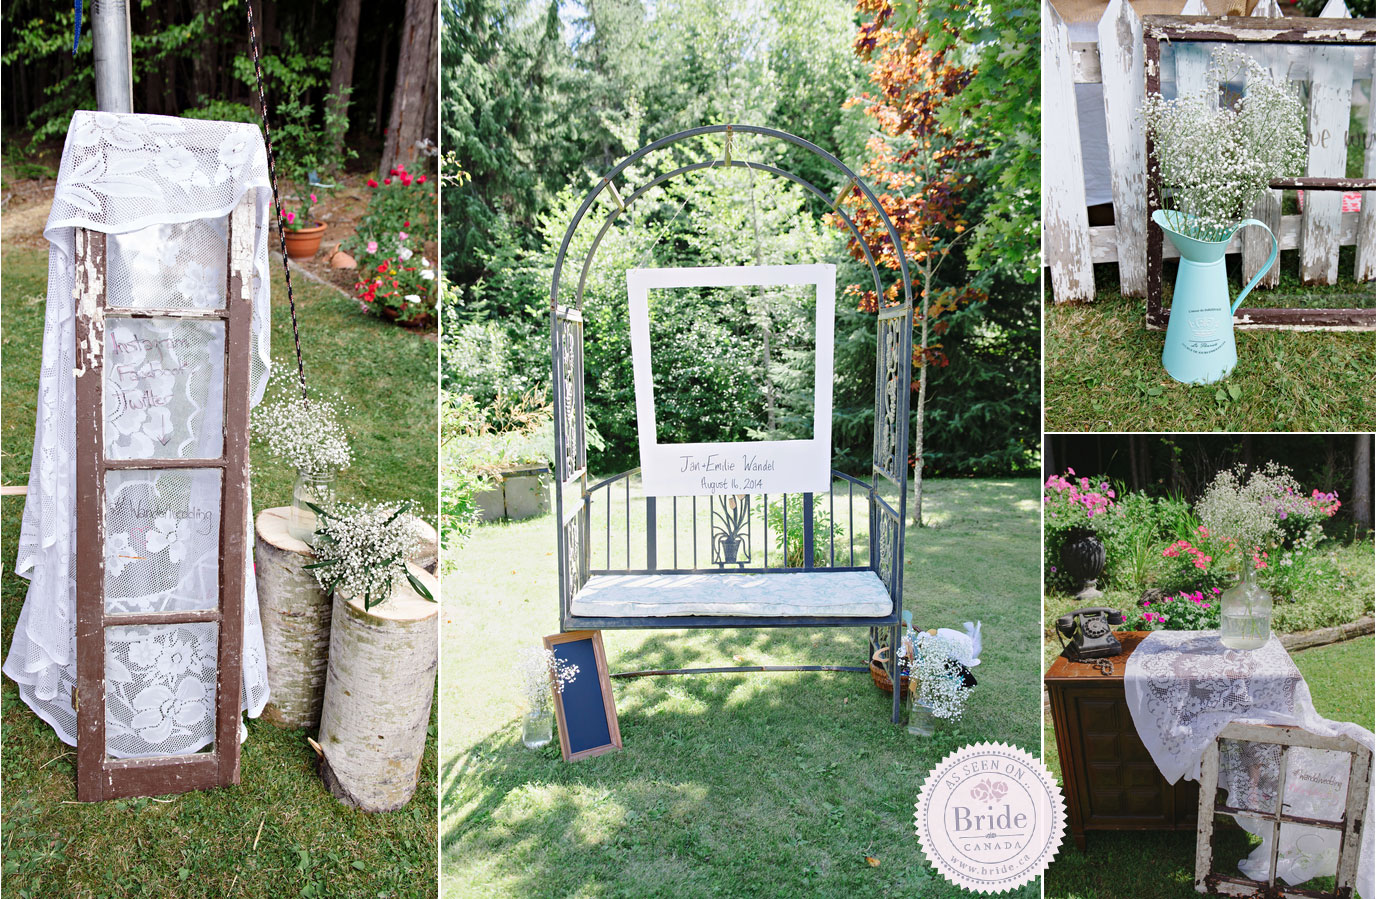 bride.ca | Real Wedding: Emilie & Jan Rustic, Backyard & Very DIY!